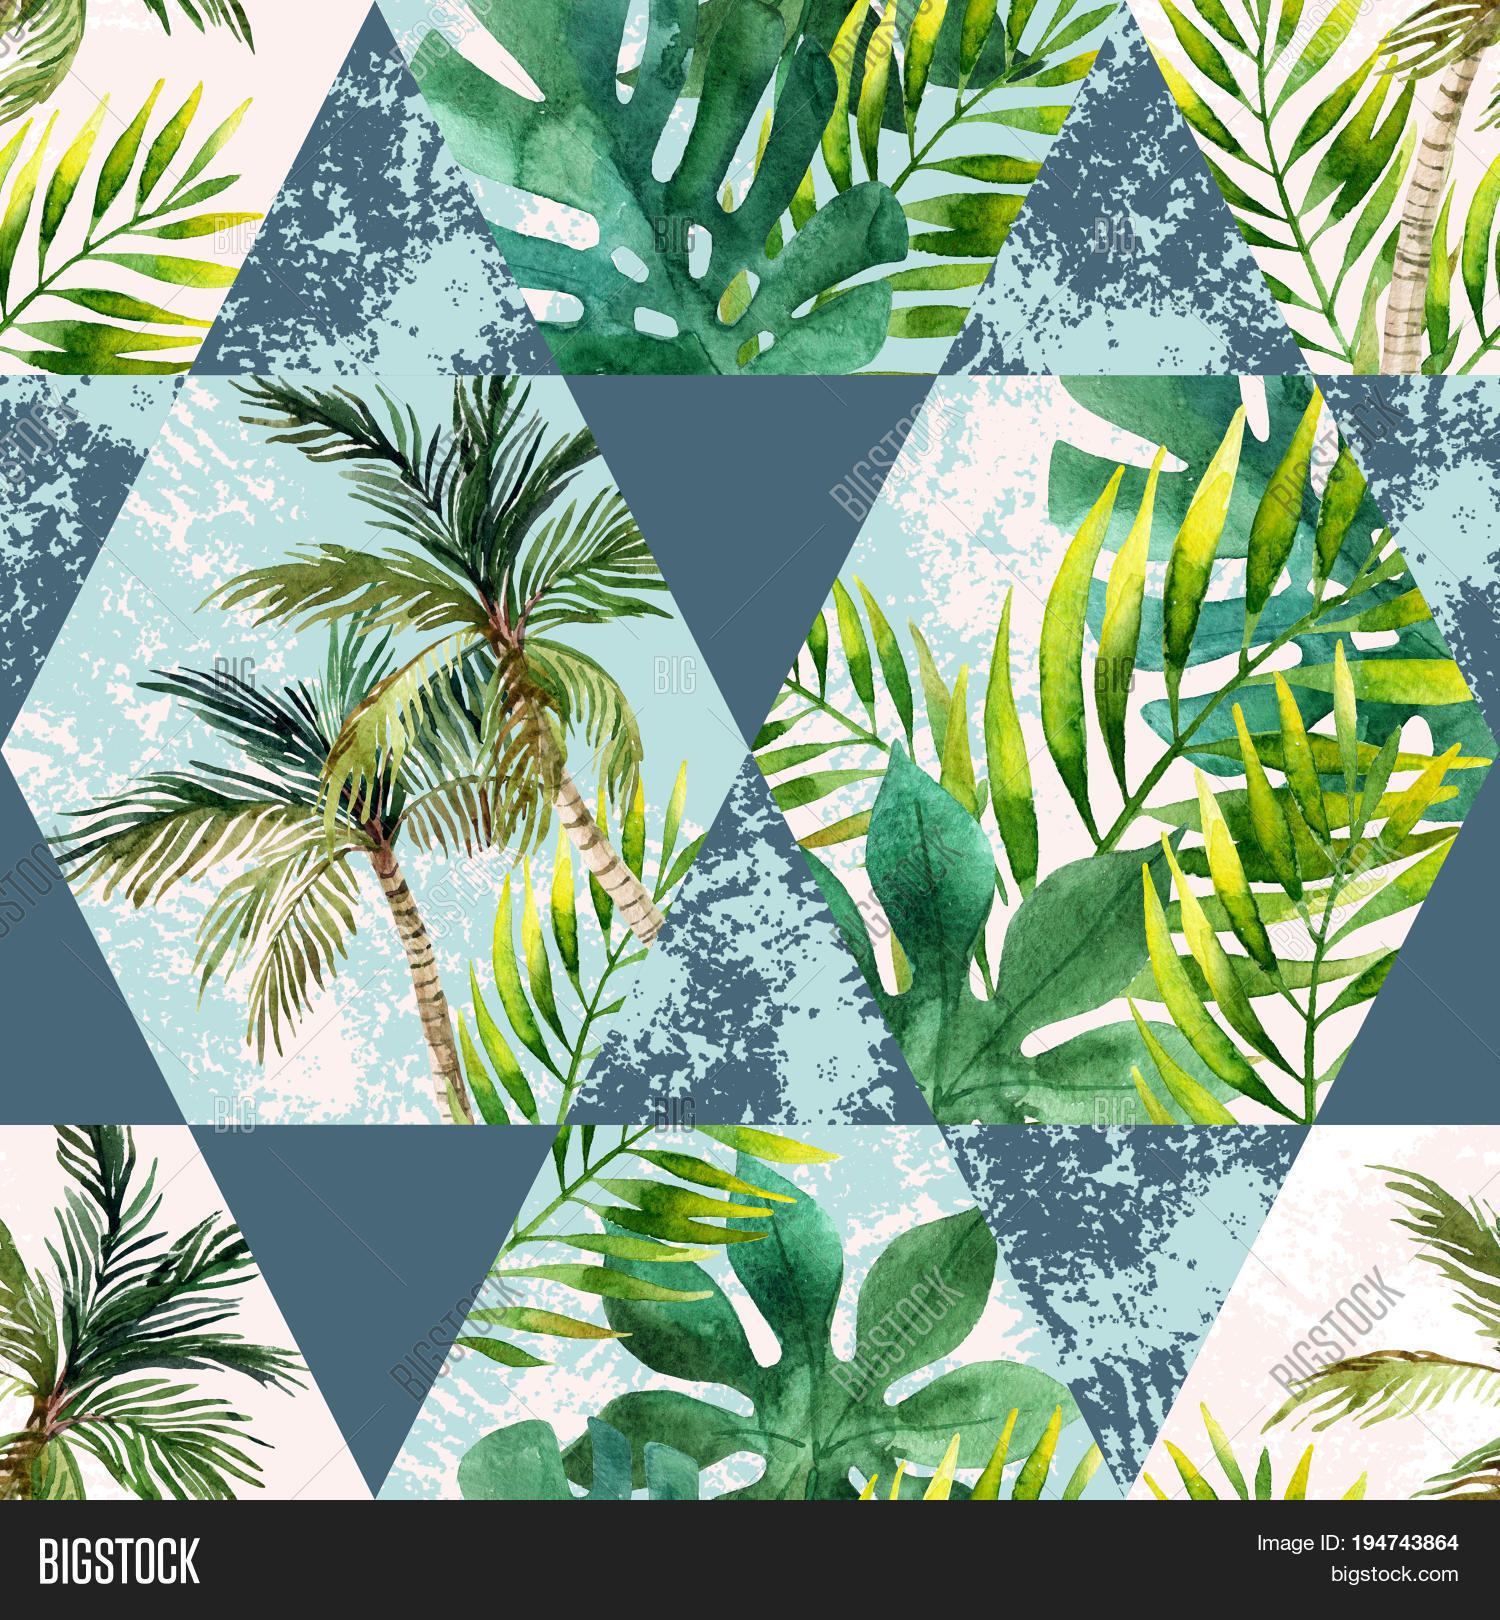 Watercolor Tropical Leaves Palm Image & Photo | Bigstock